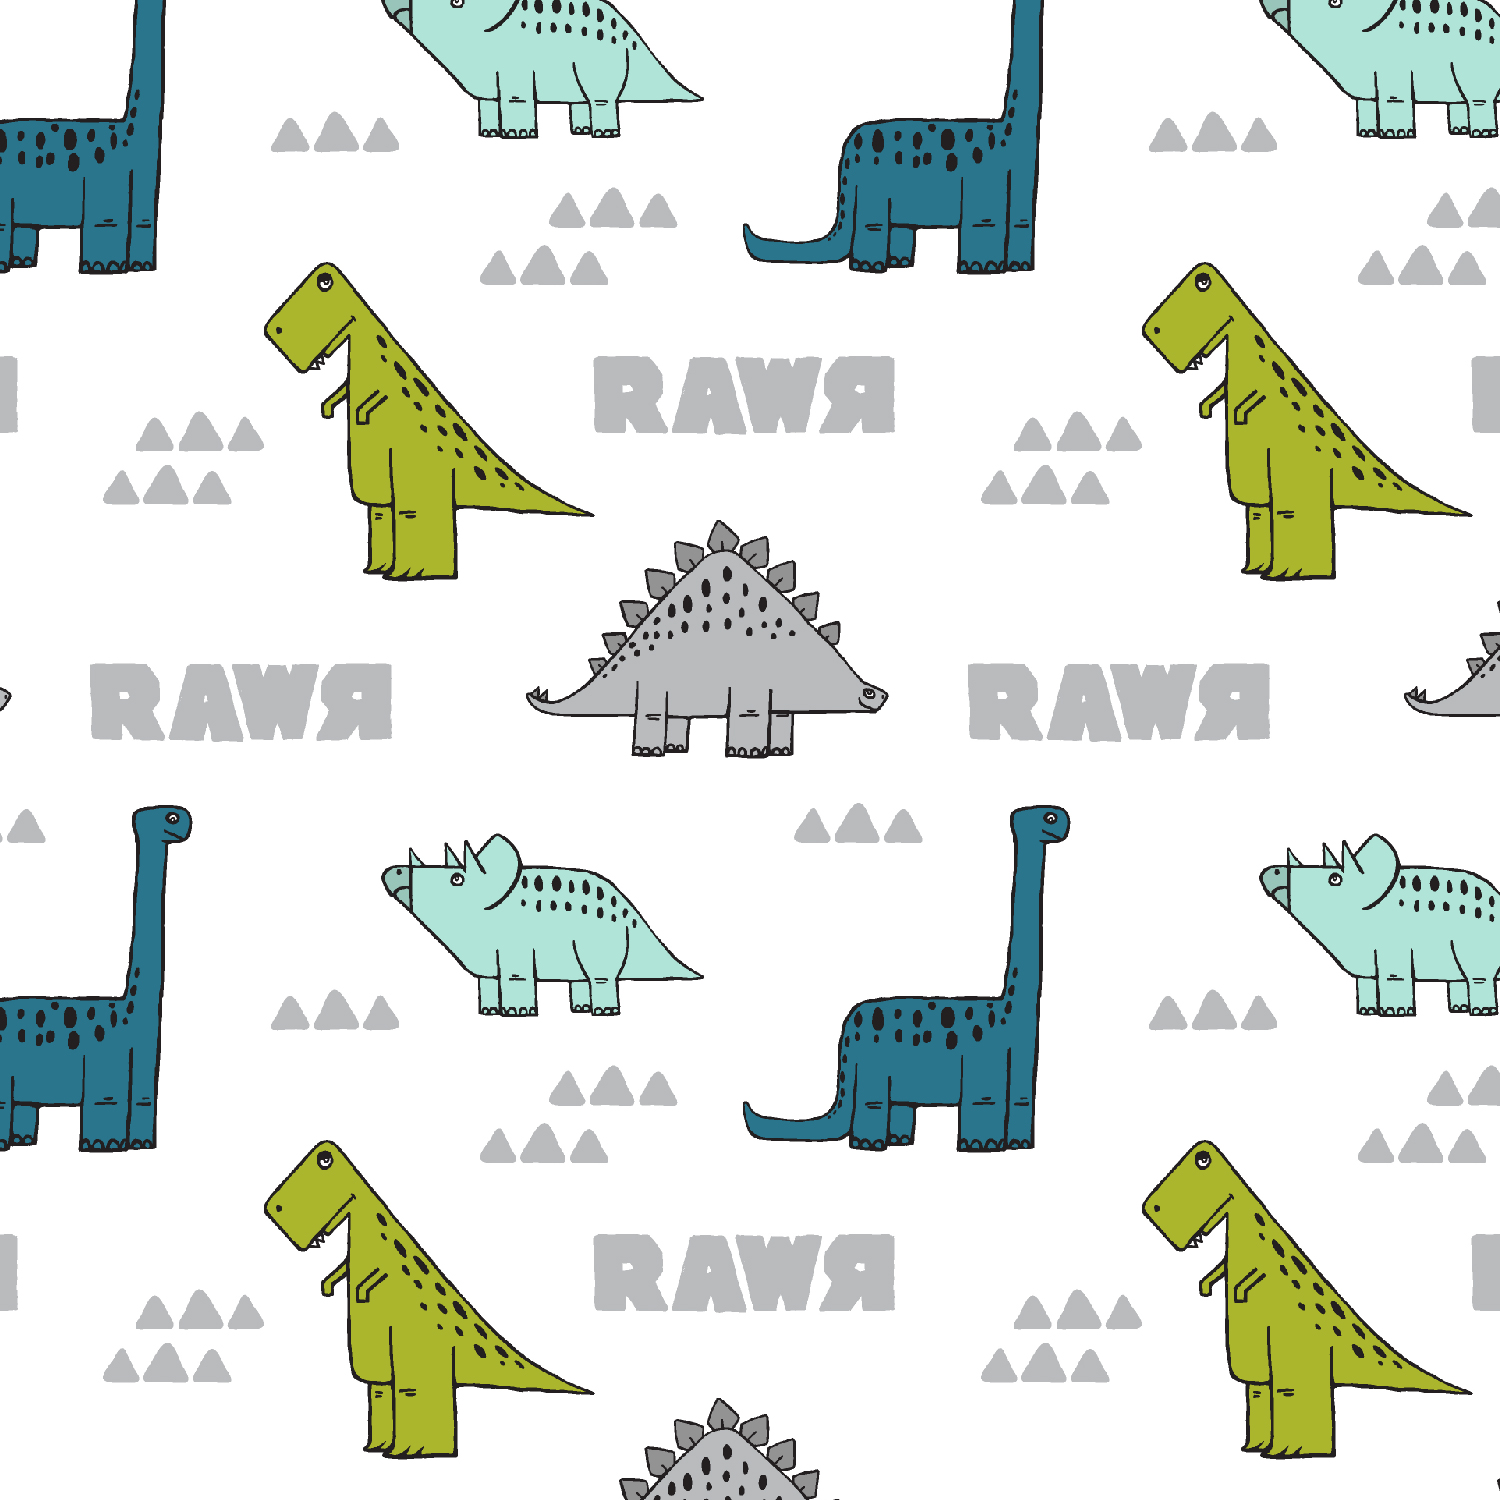 patternbank patterns-13.jpg